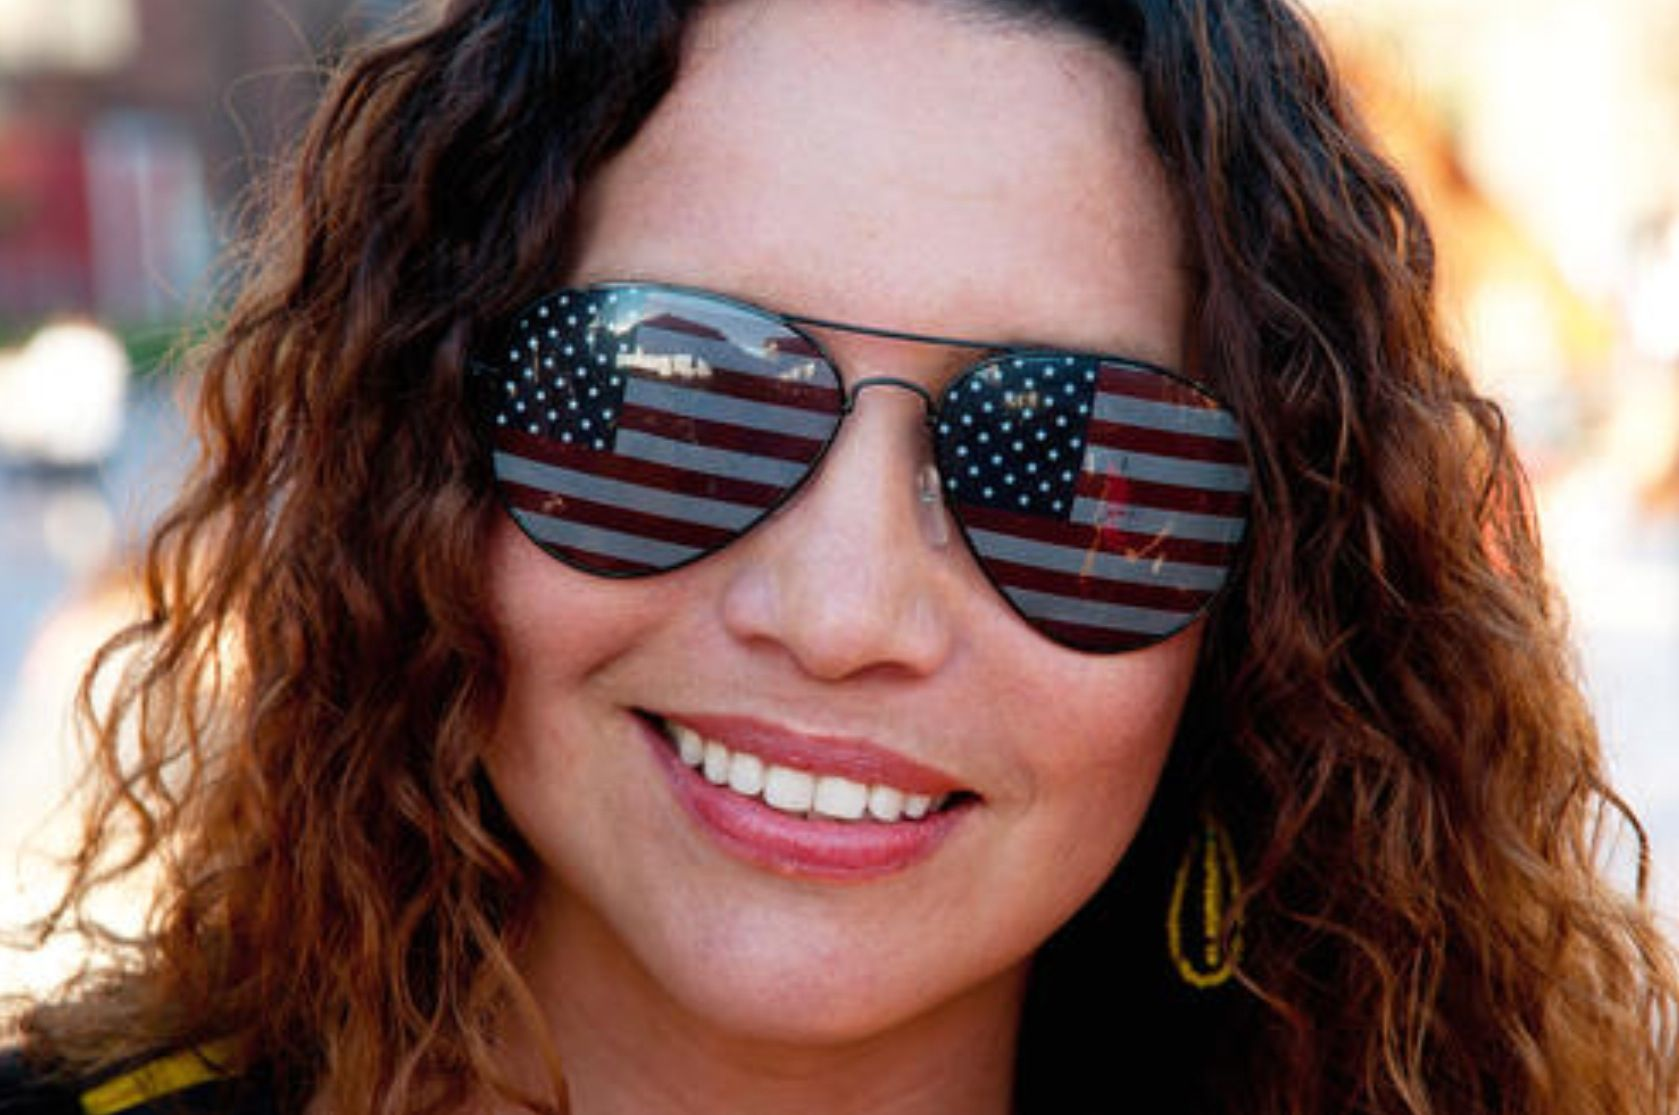 Cool Fourth of July sunglasses!!